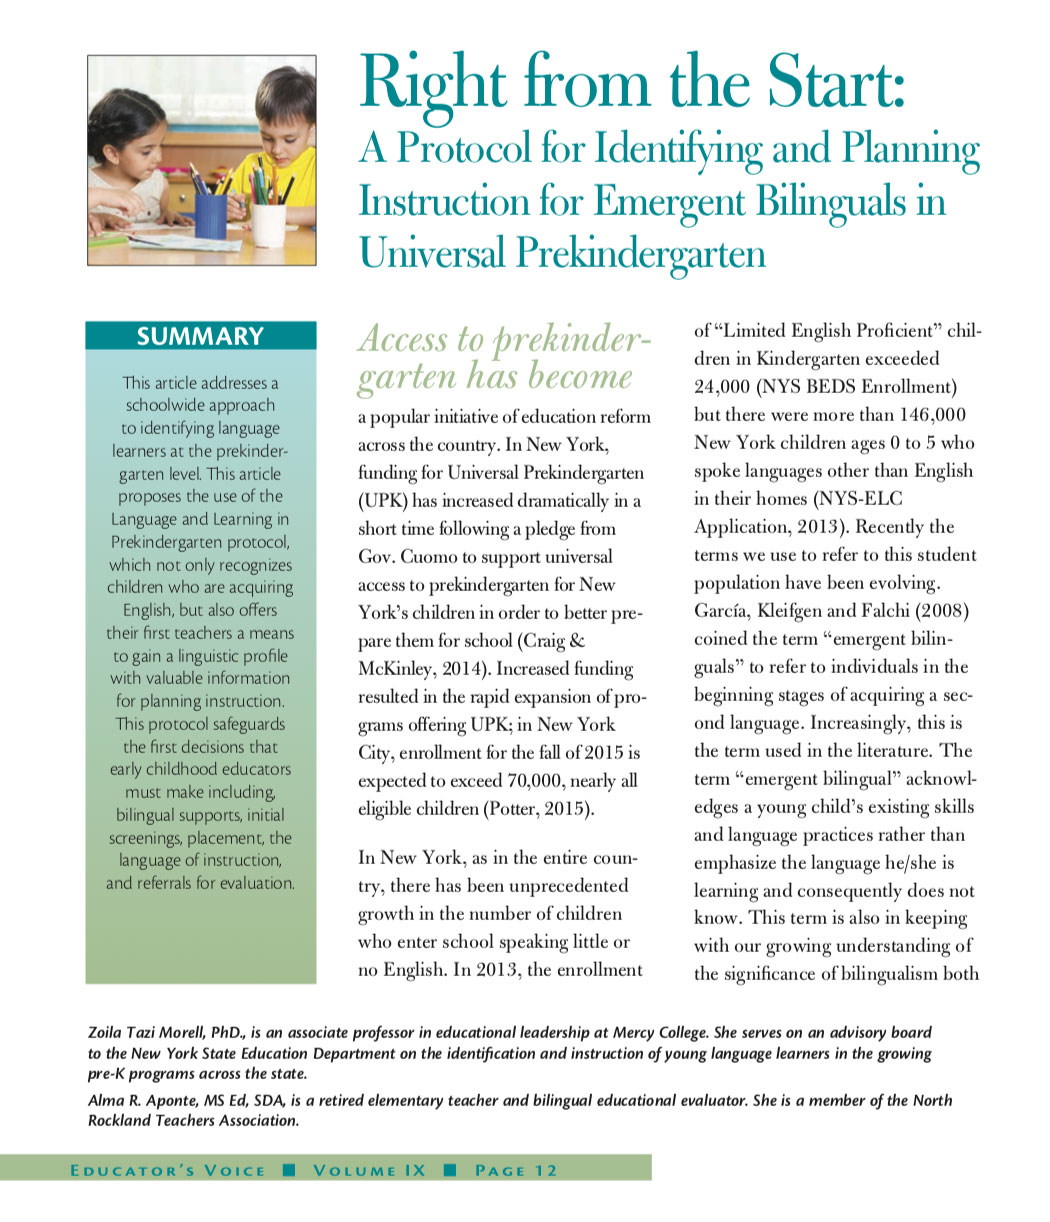 Right from the Start: A Protocol for Identifying and Planning Instruction for Emergent Bilinguals in Universal Prekindergarten